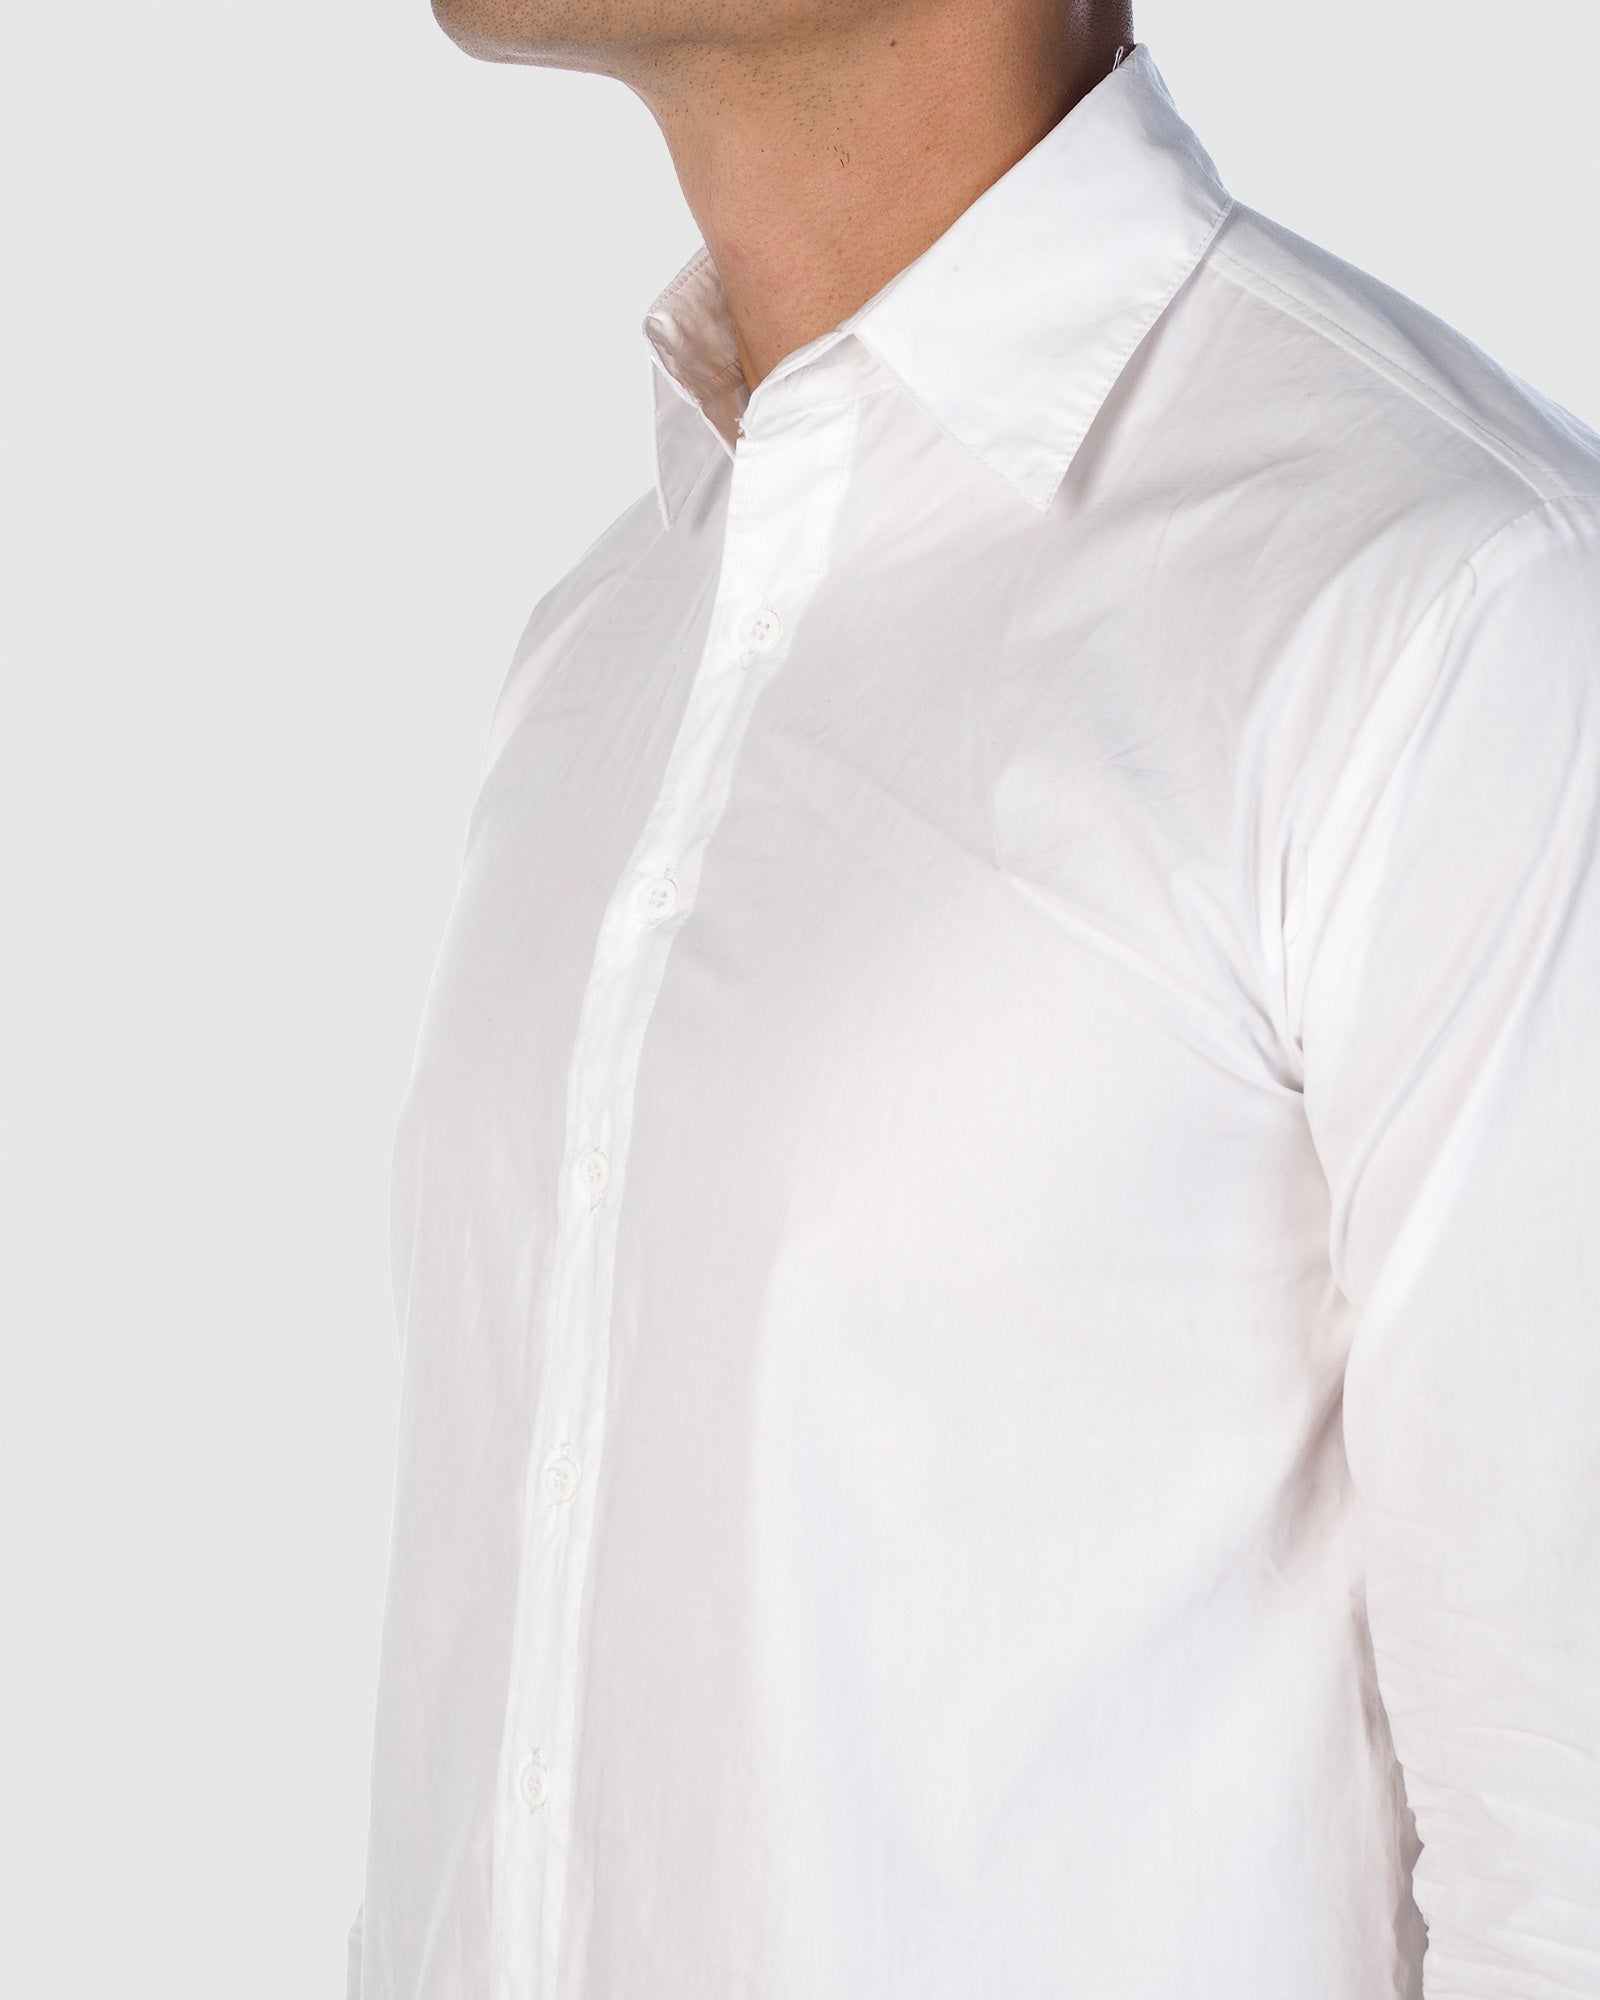 Button Down - Long Sleeve Shirt - White